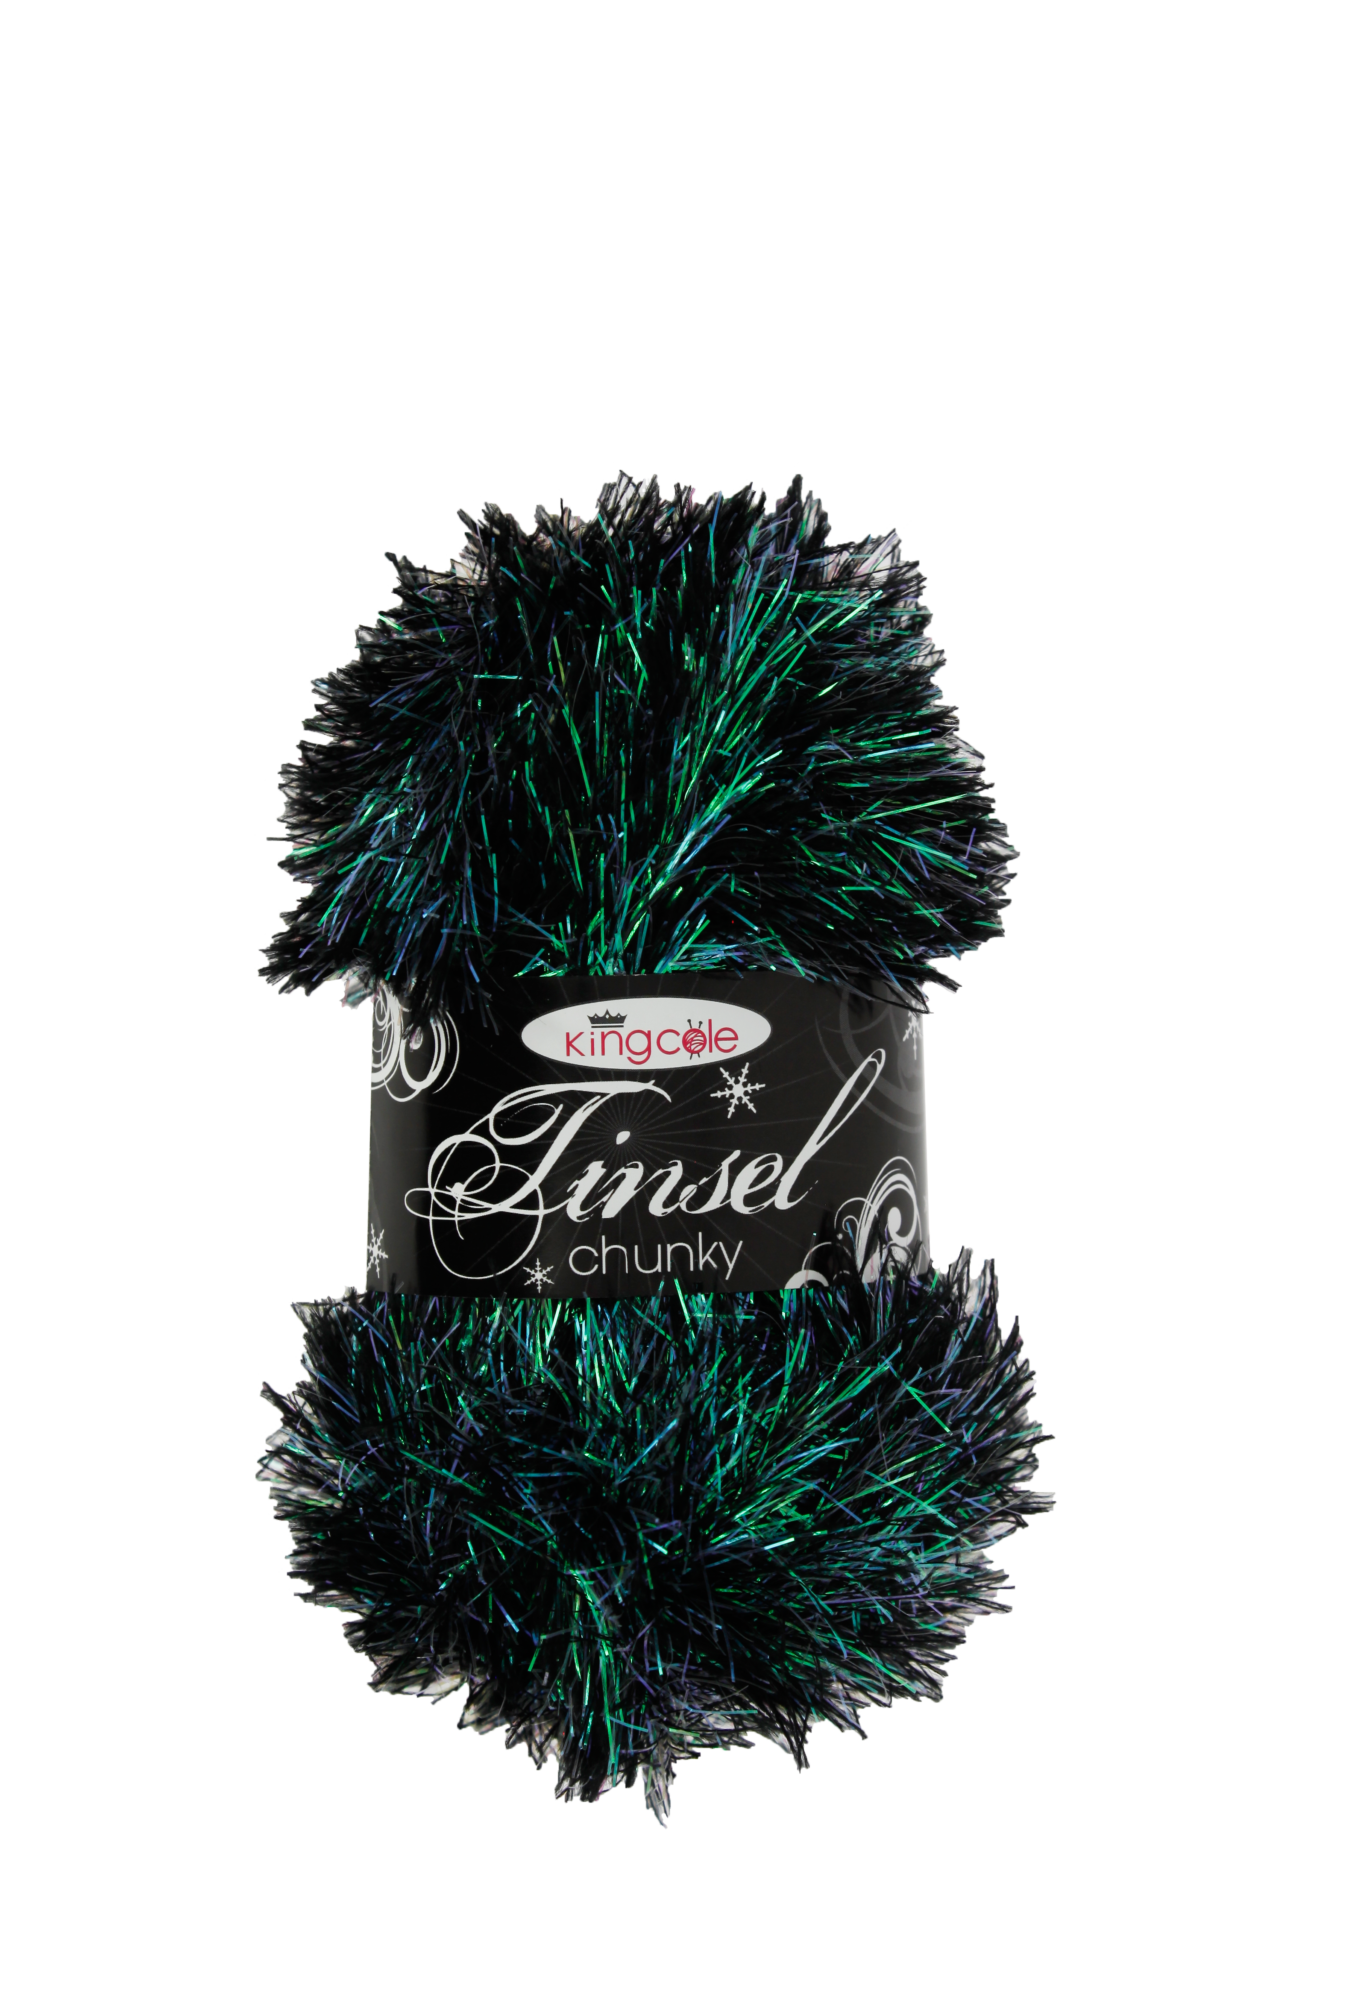 King Cole Tinsel Chunky product image